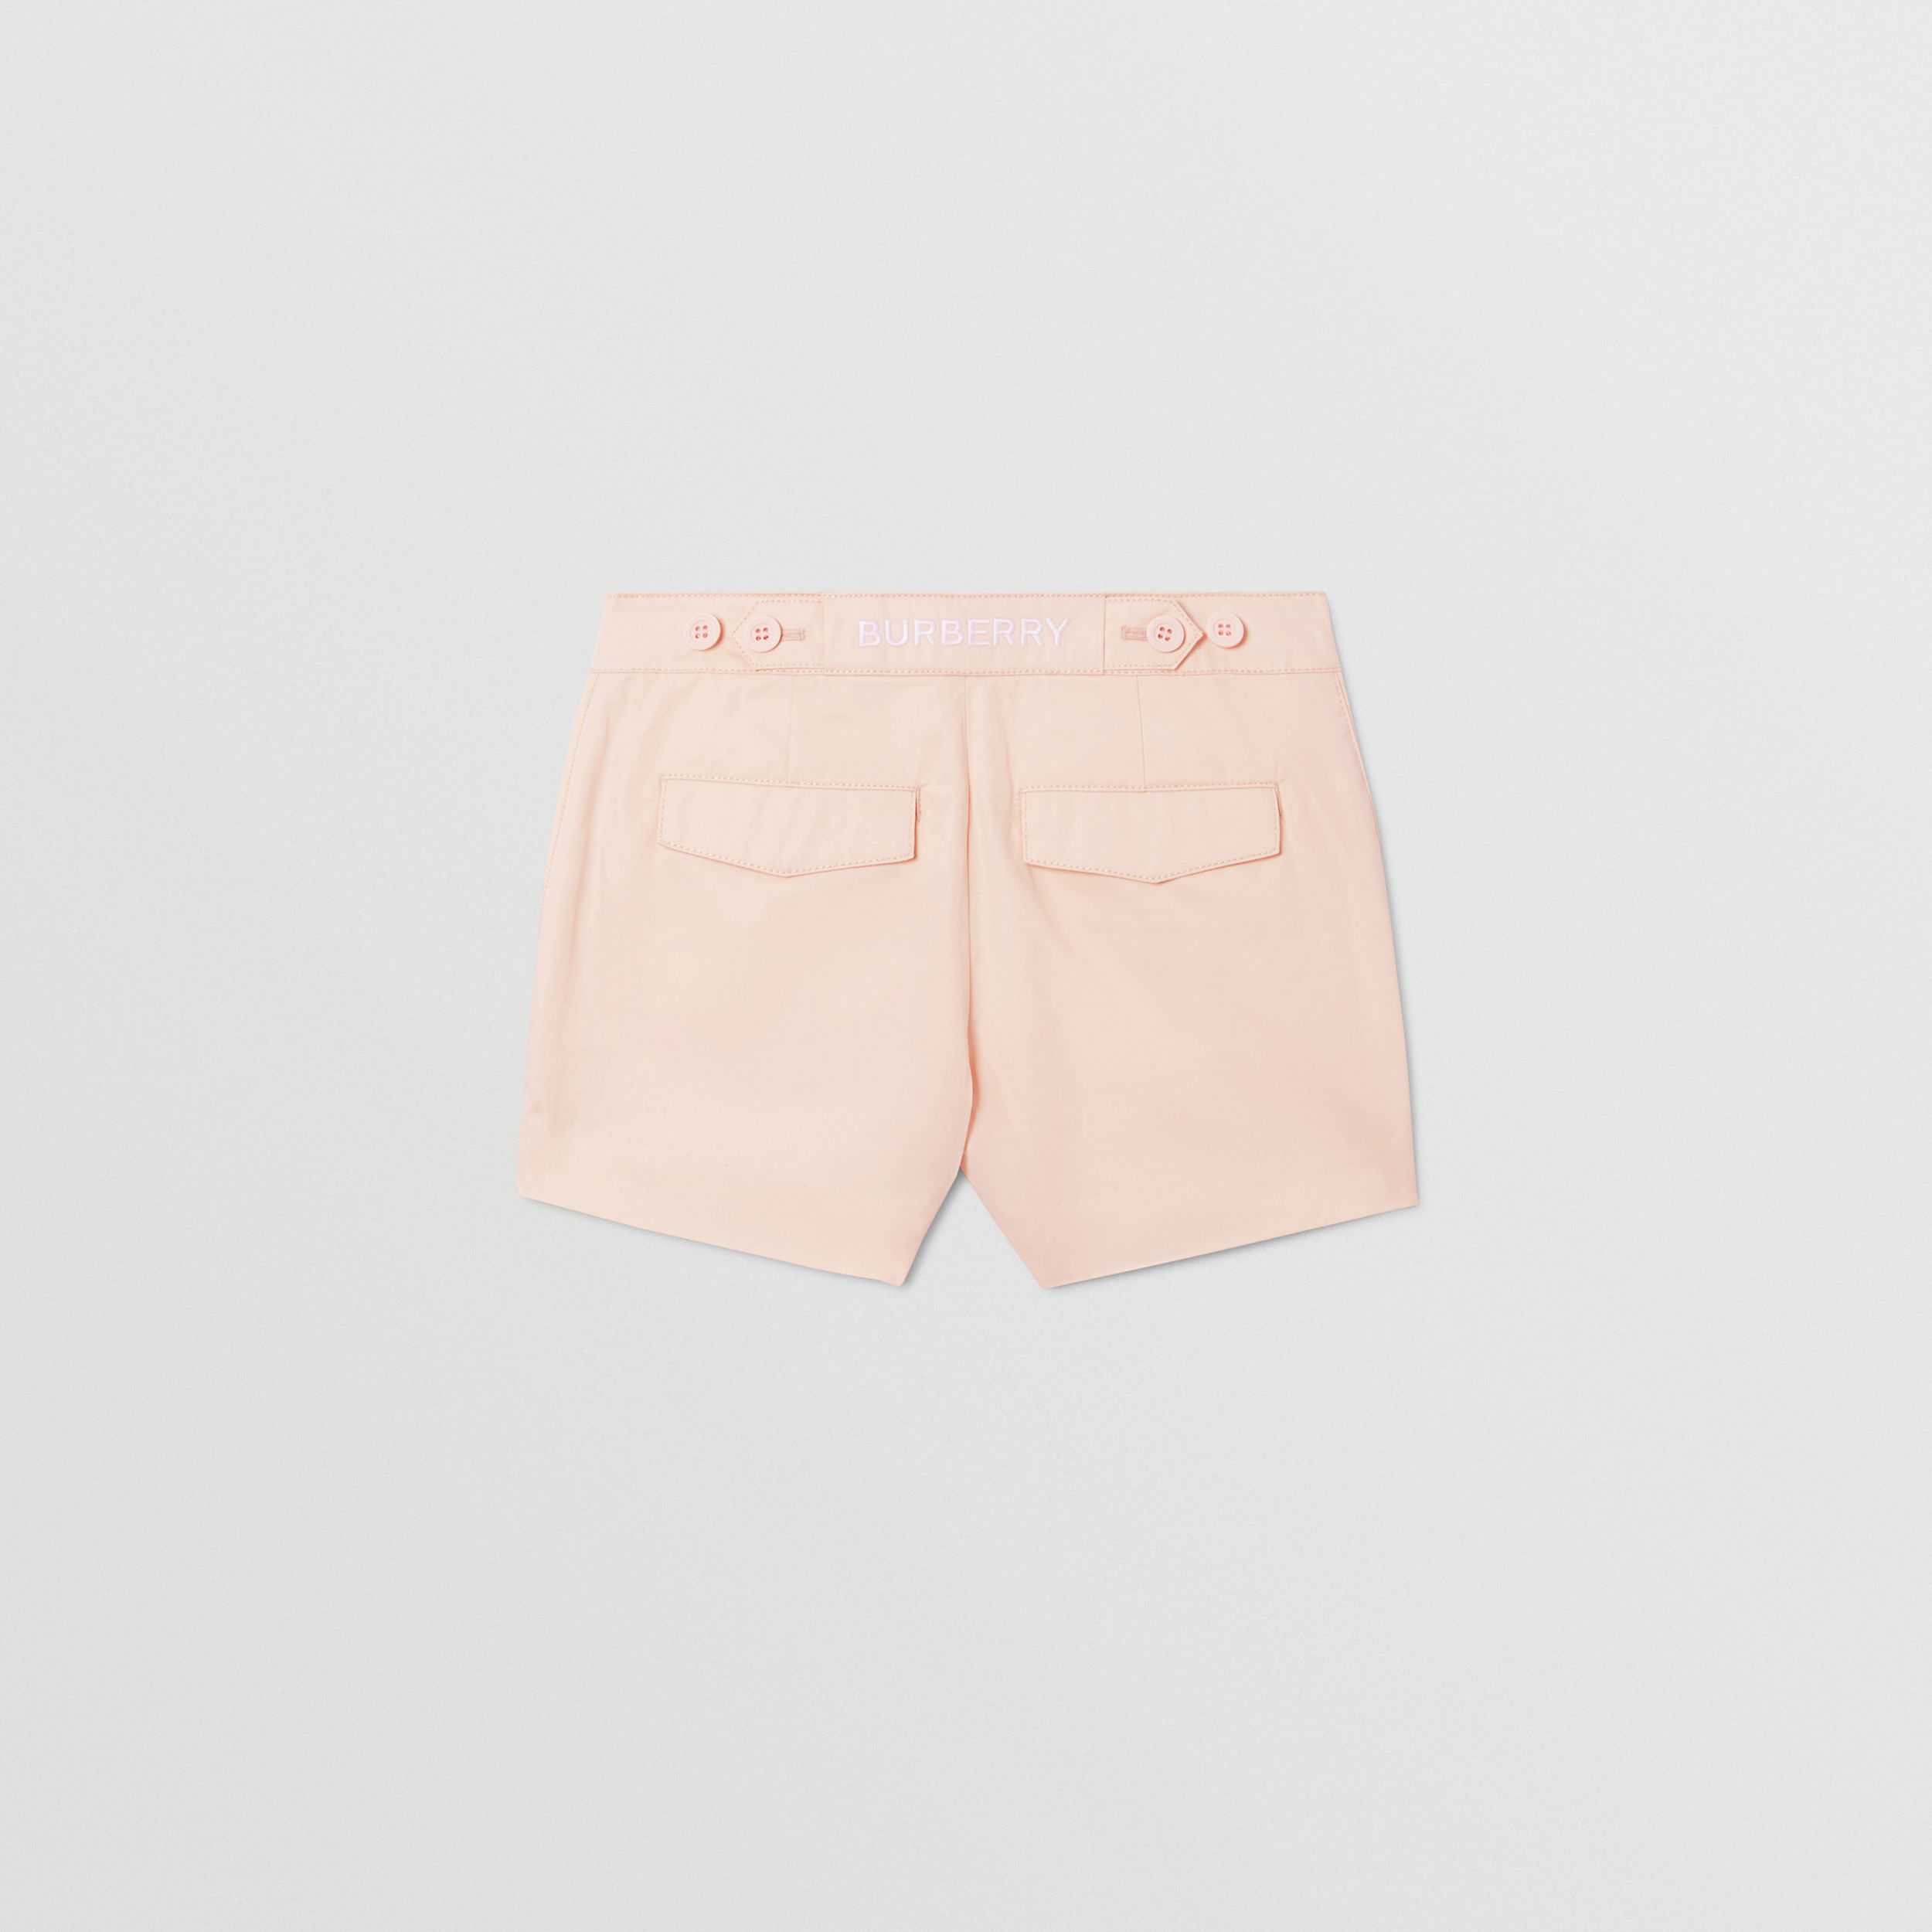 Embroidered Logo Cotton Shorts in Soft Pink | Burberry - 4